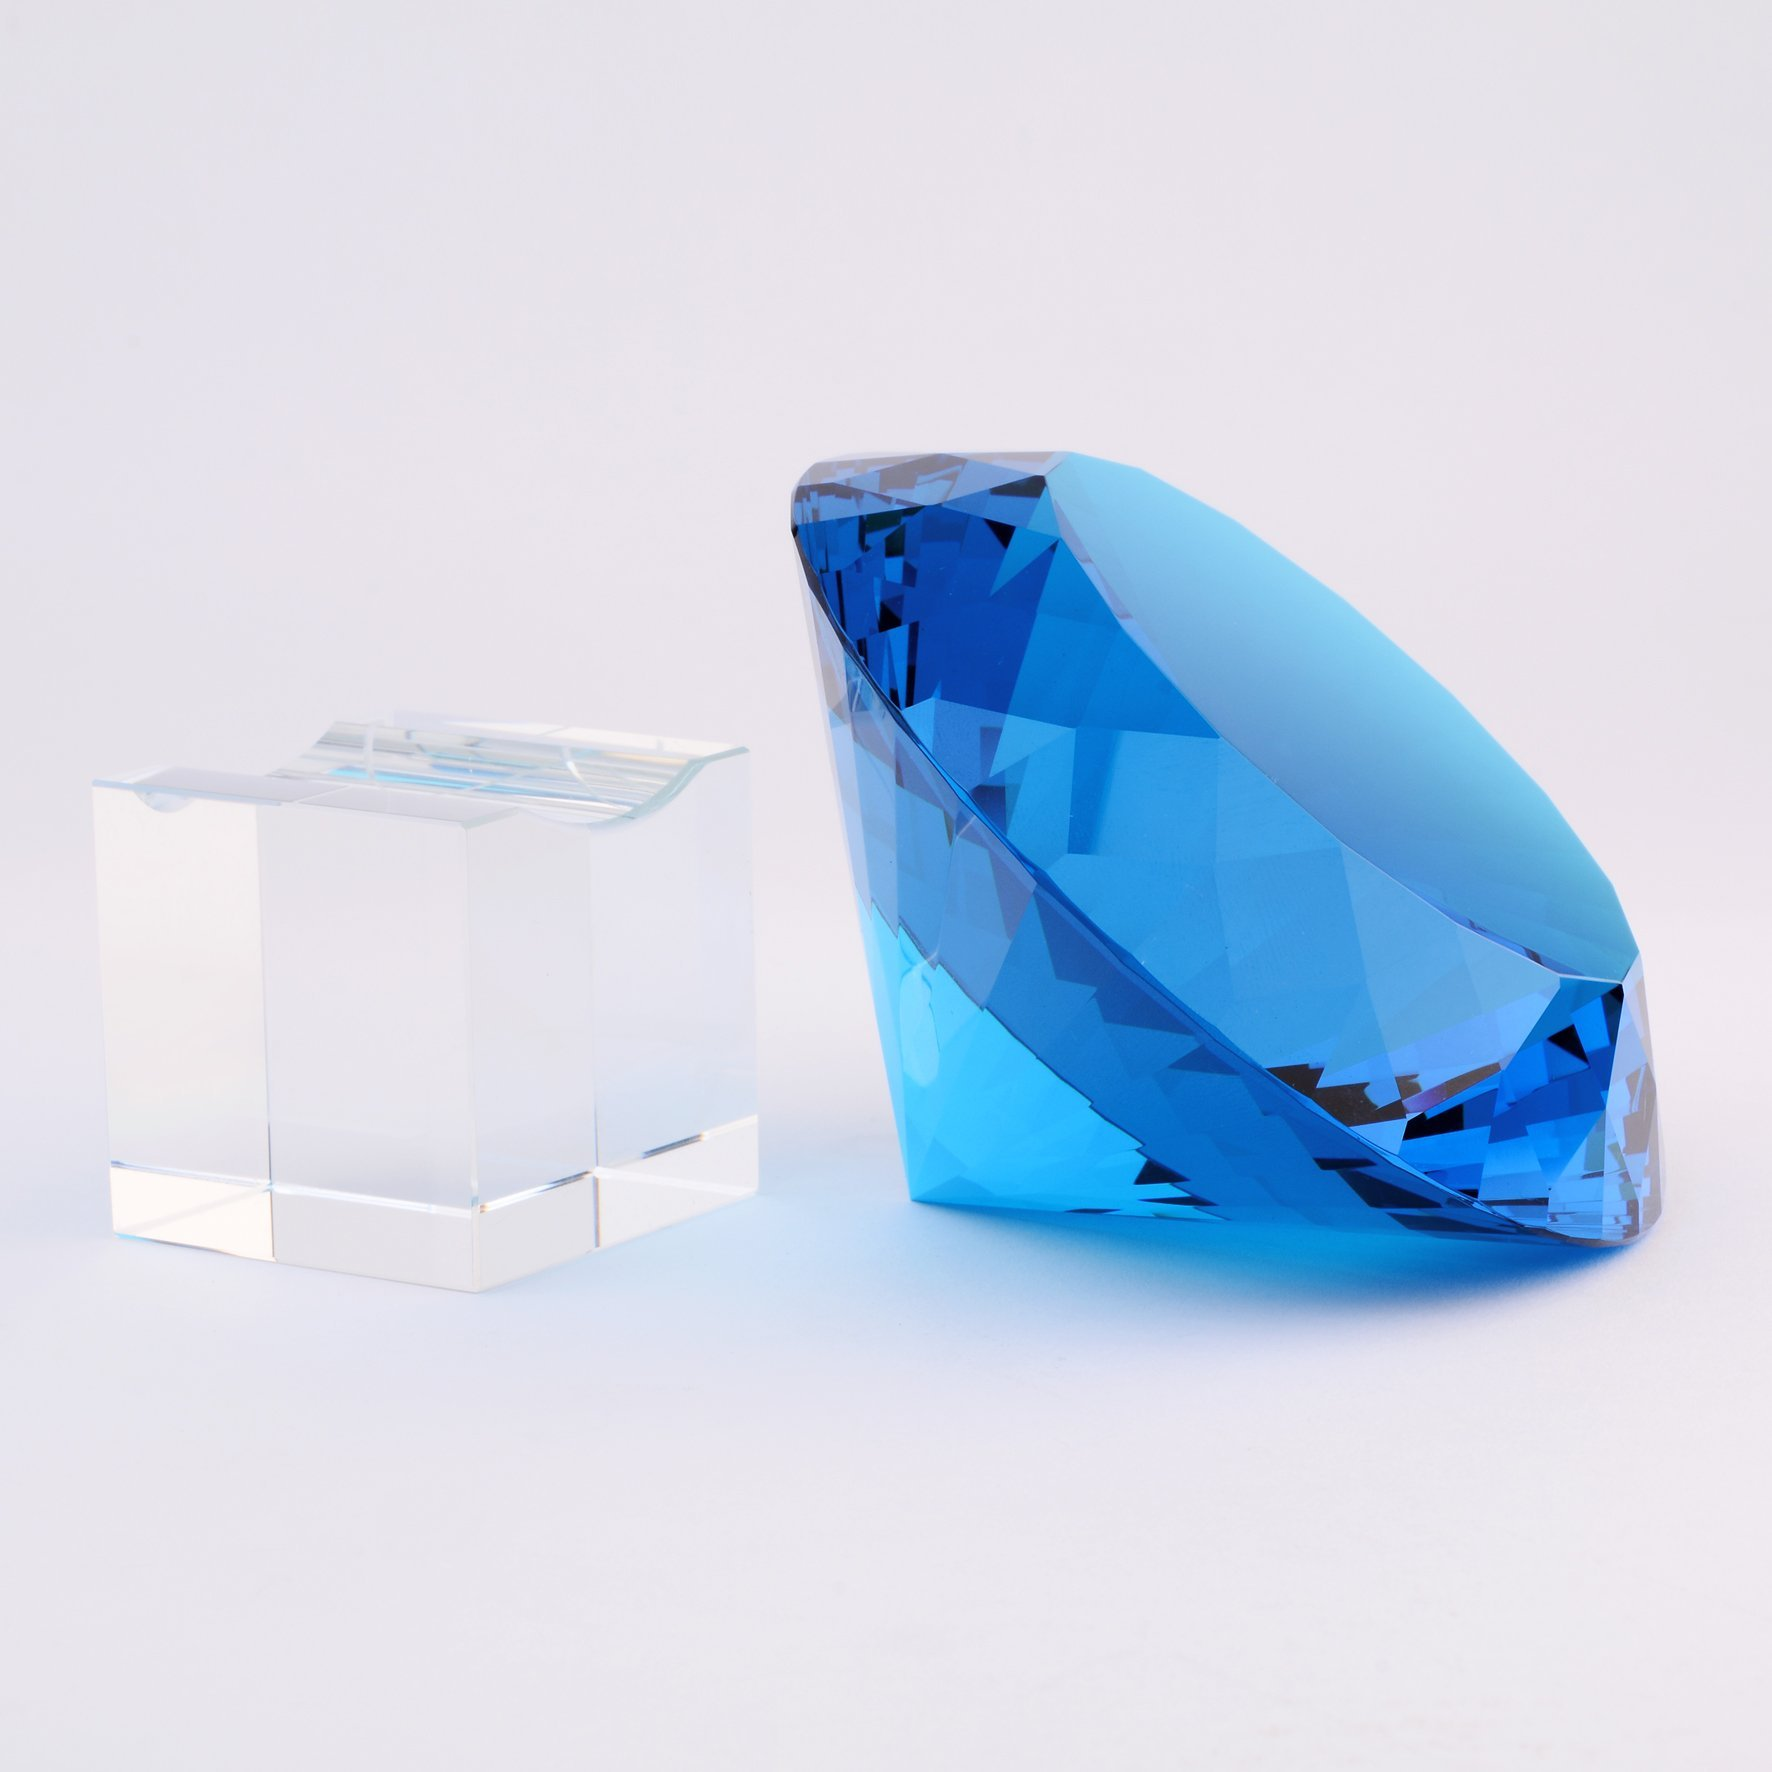 BRLIGHTING Cobalt Blue crystal Diamond Paperweight on stand for Office, Lovely Gift for Friends and Family (D120mm / 4.73'') by BRLIGHTING (Image #6)